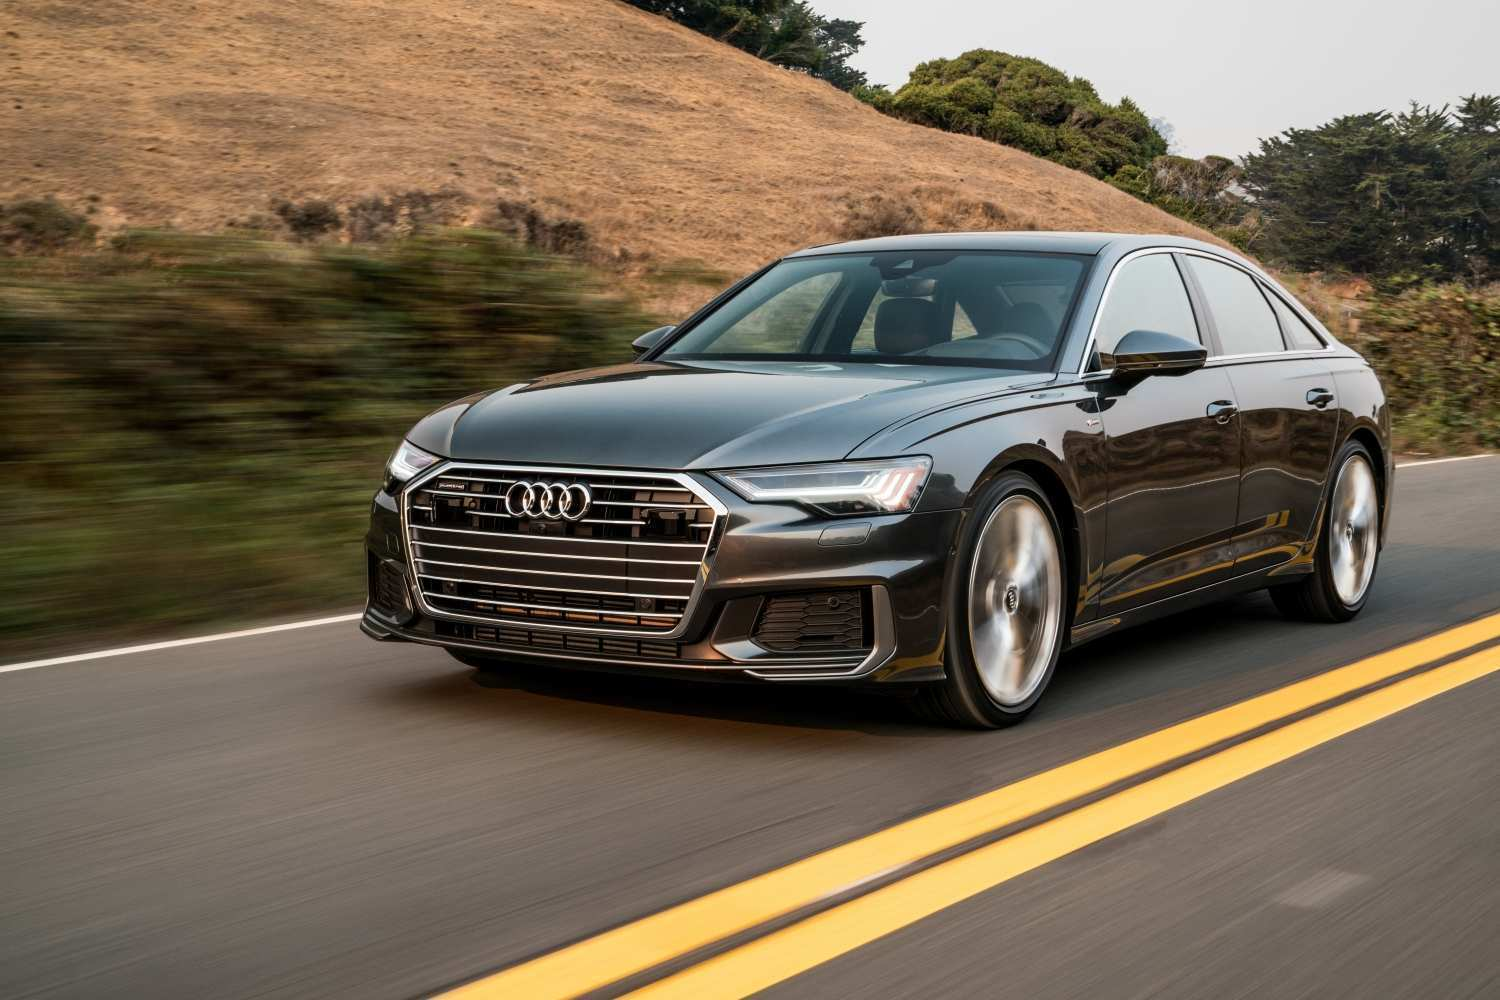 40 Great 2019 Audi A6 Review Redesign and Concept by 2019 Audi A6 Review